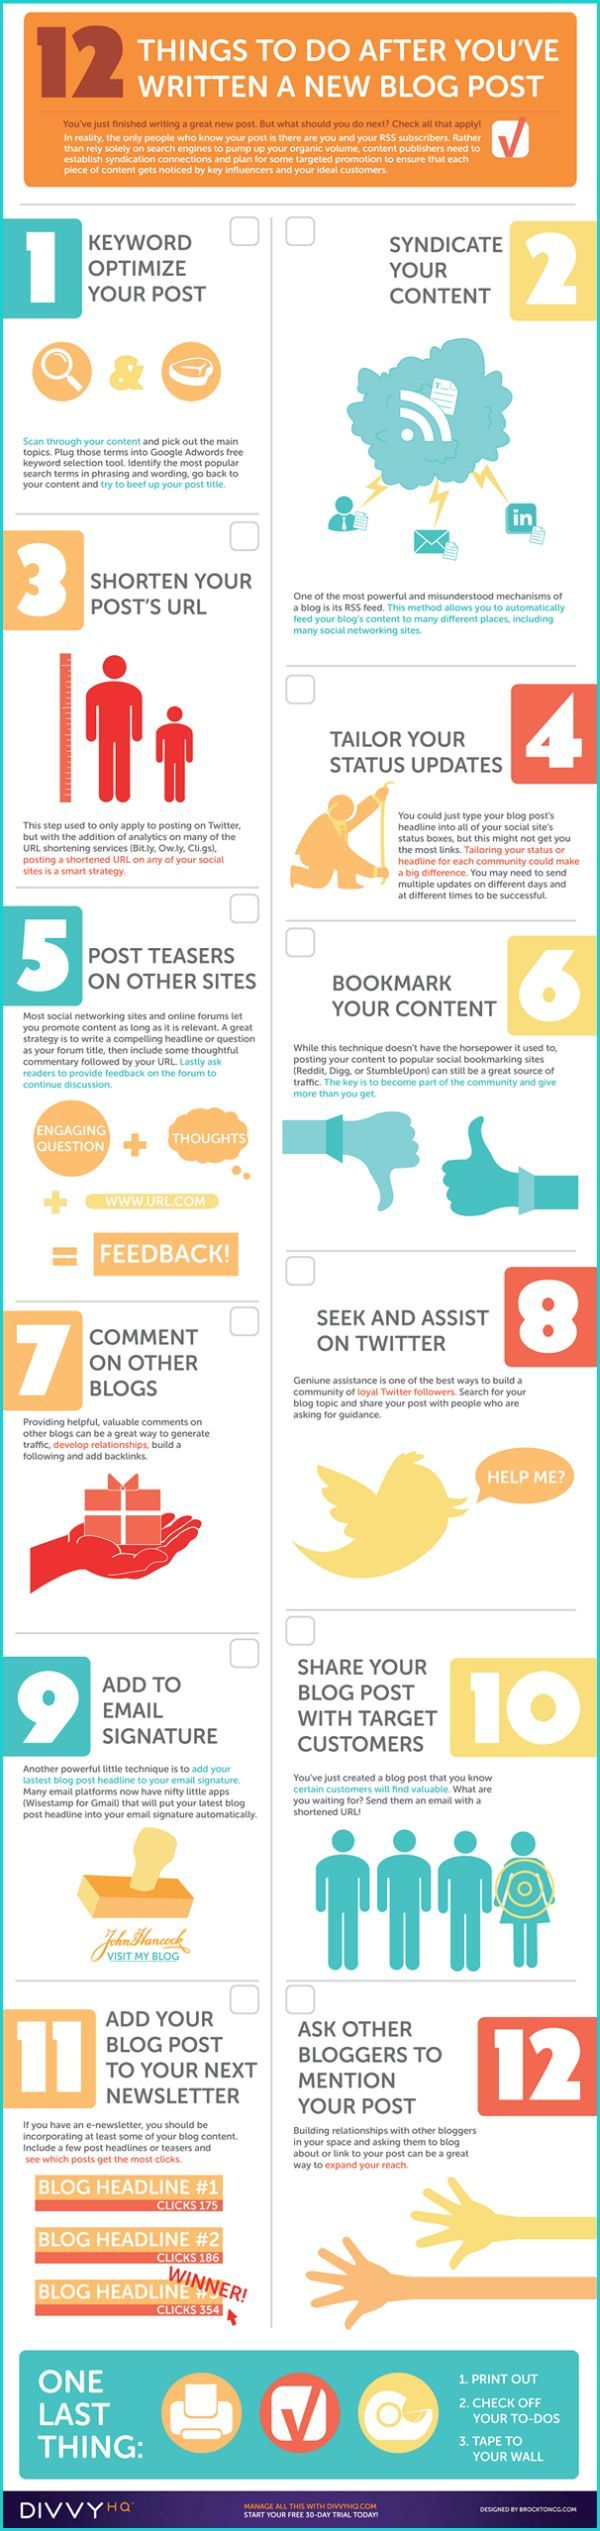 12 things to do after you've written a new blog post - fun colors and design on this infographic